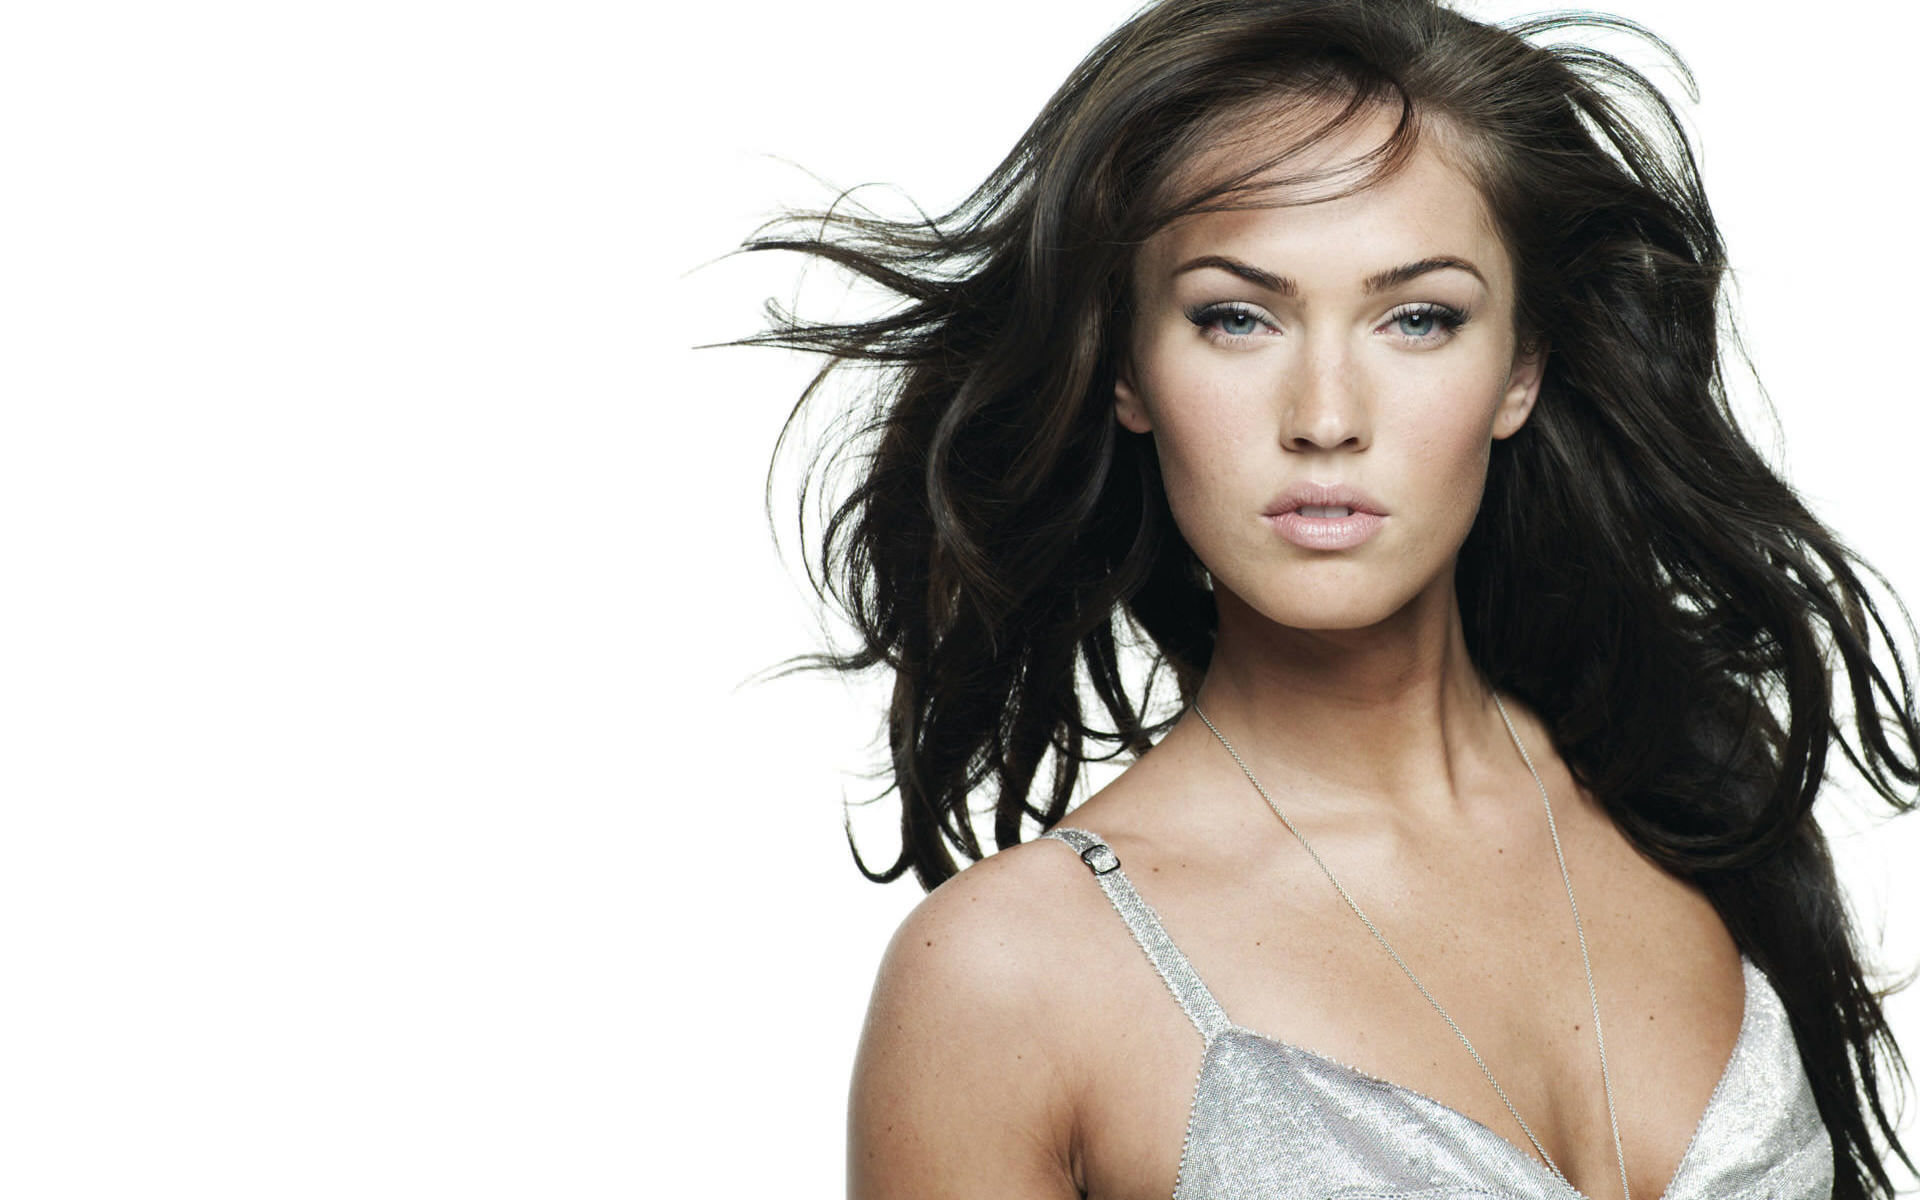 megan fox wallpaper high resolution megan fox wallpaper high 1920x1200